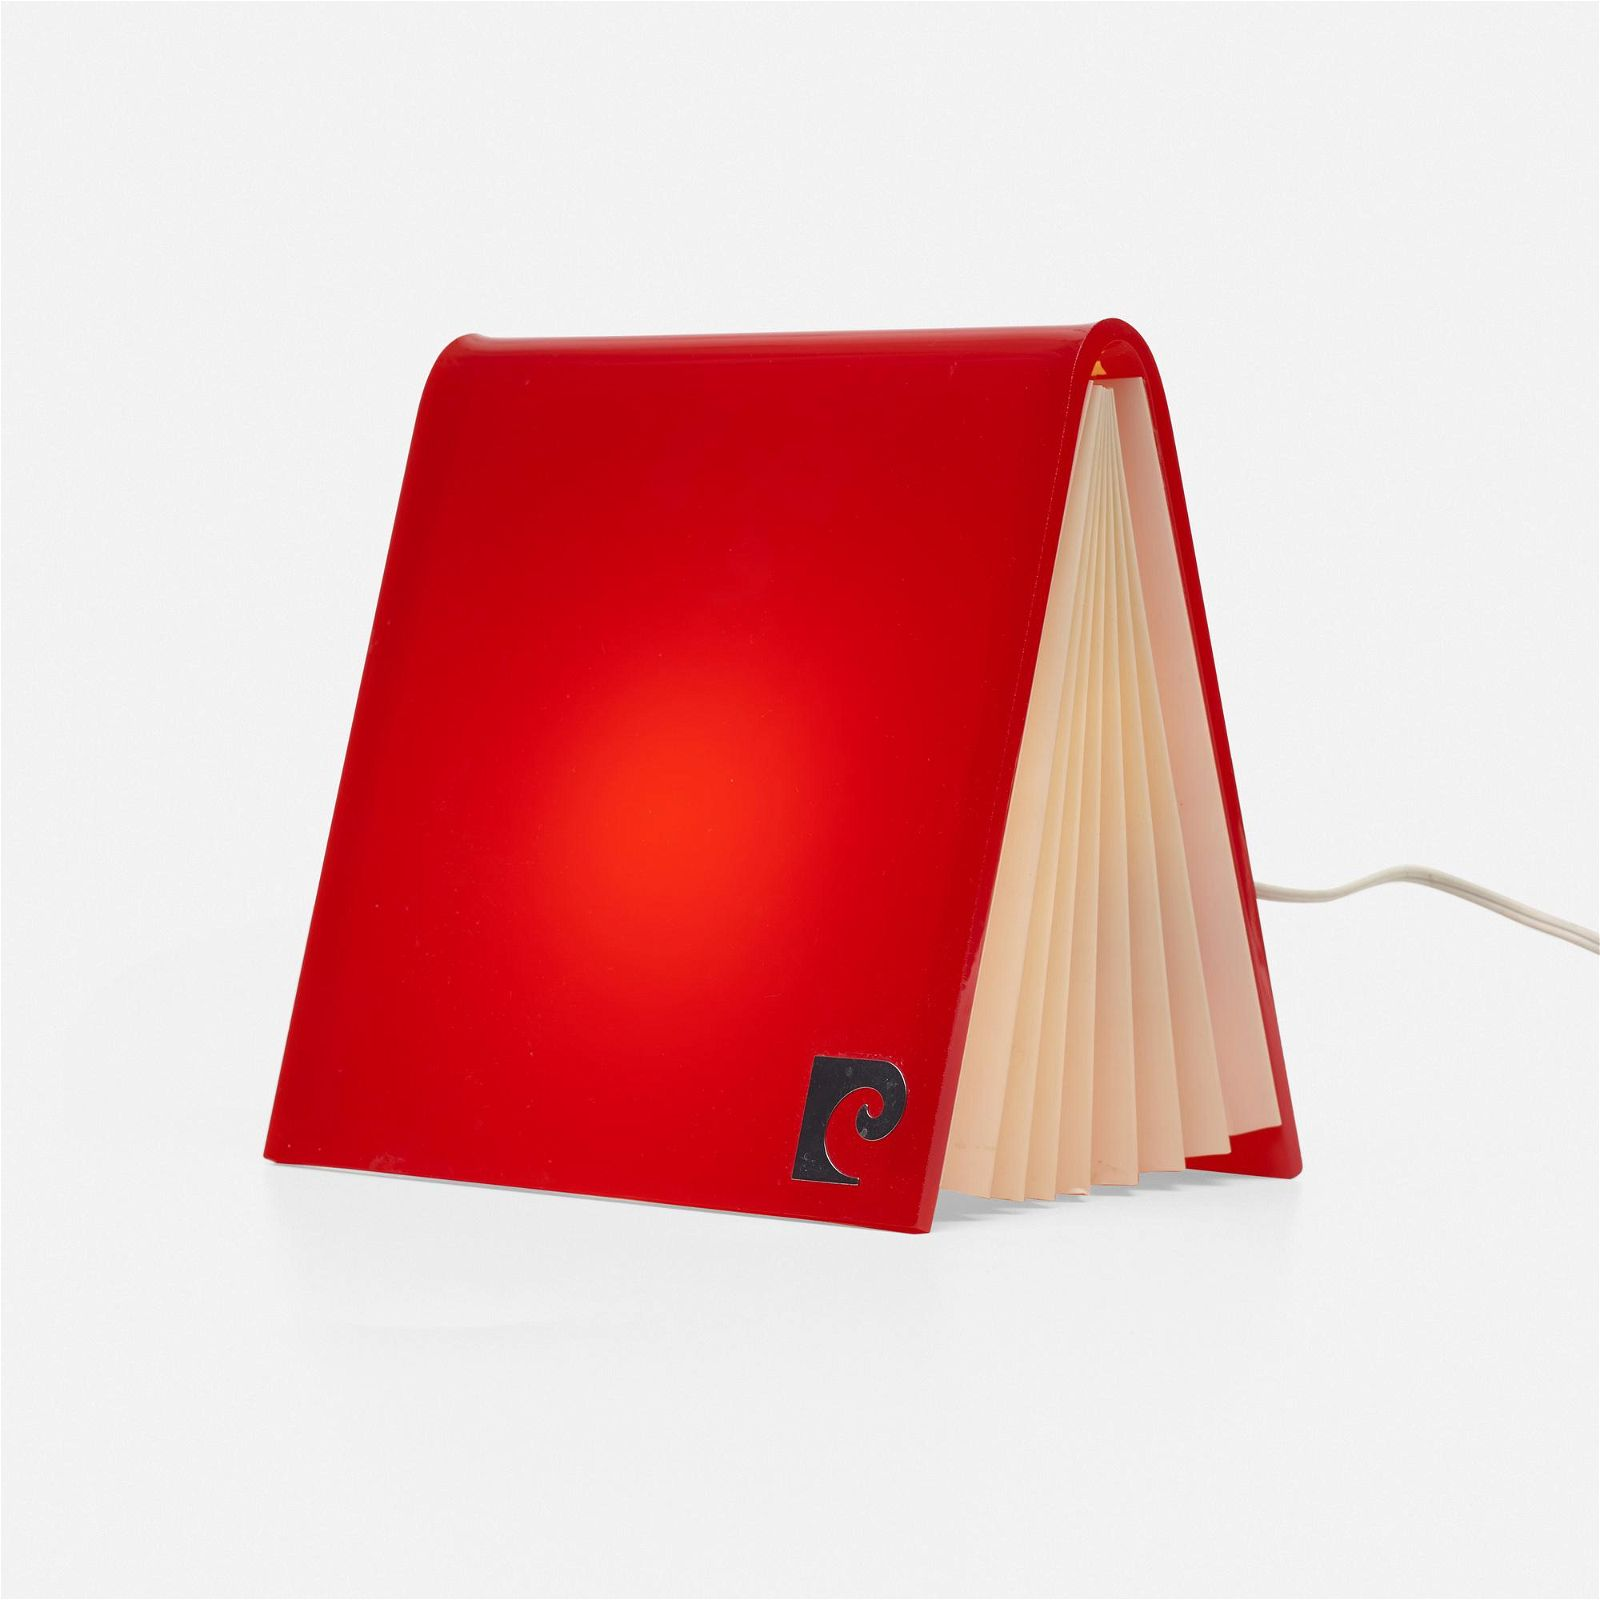 Pierre Cardin, Book form table lamp